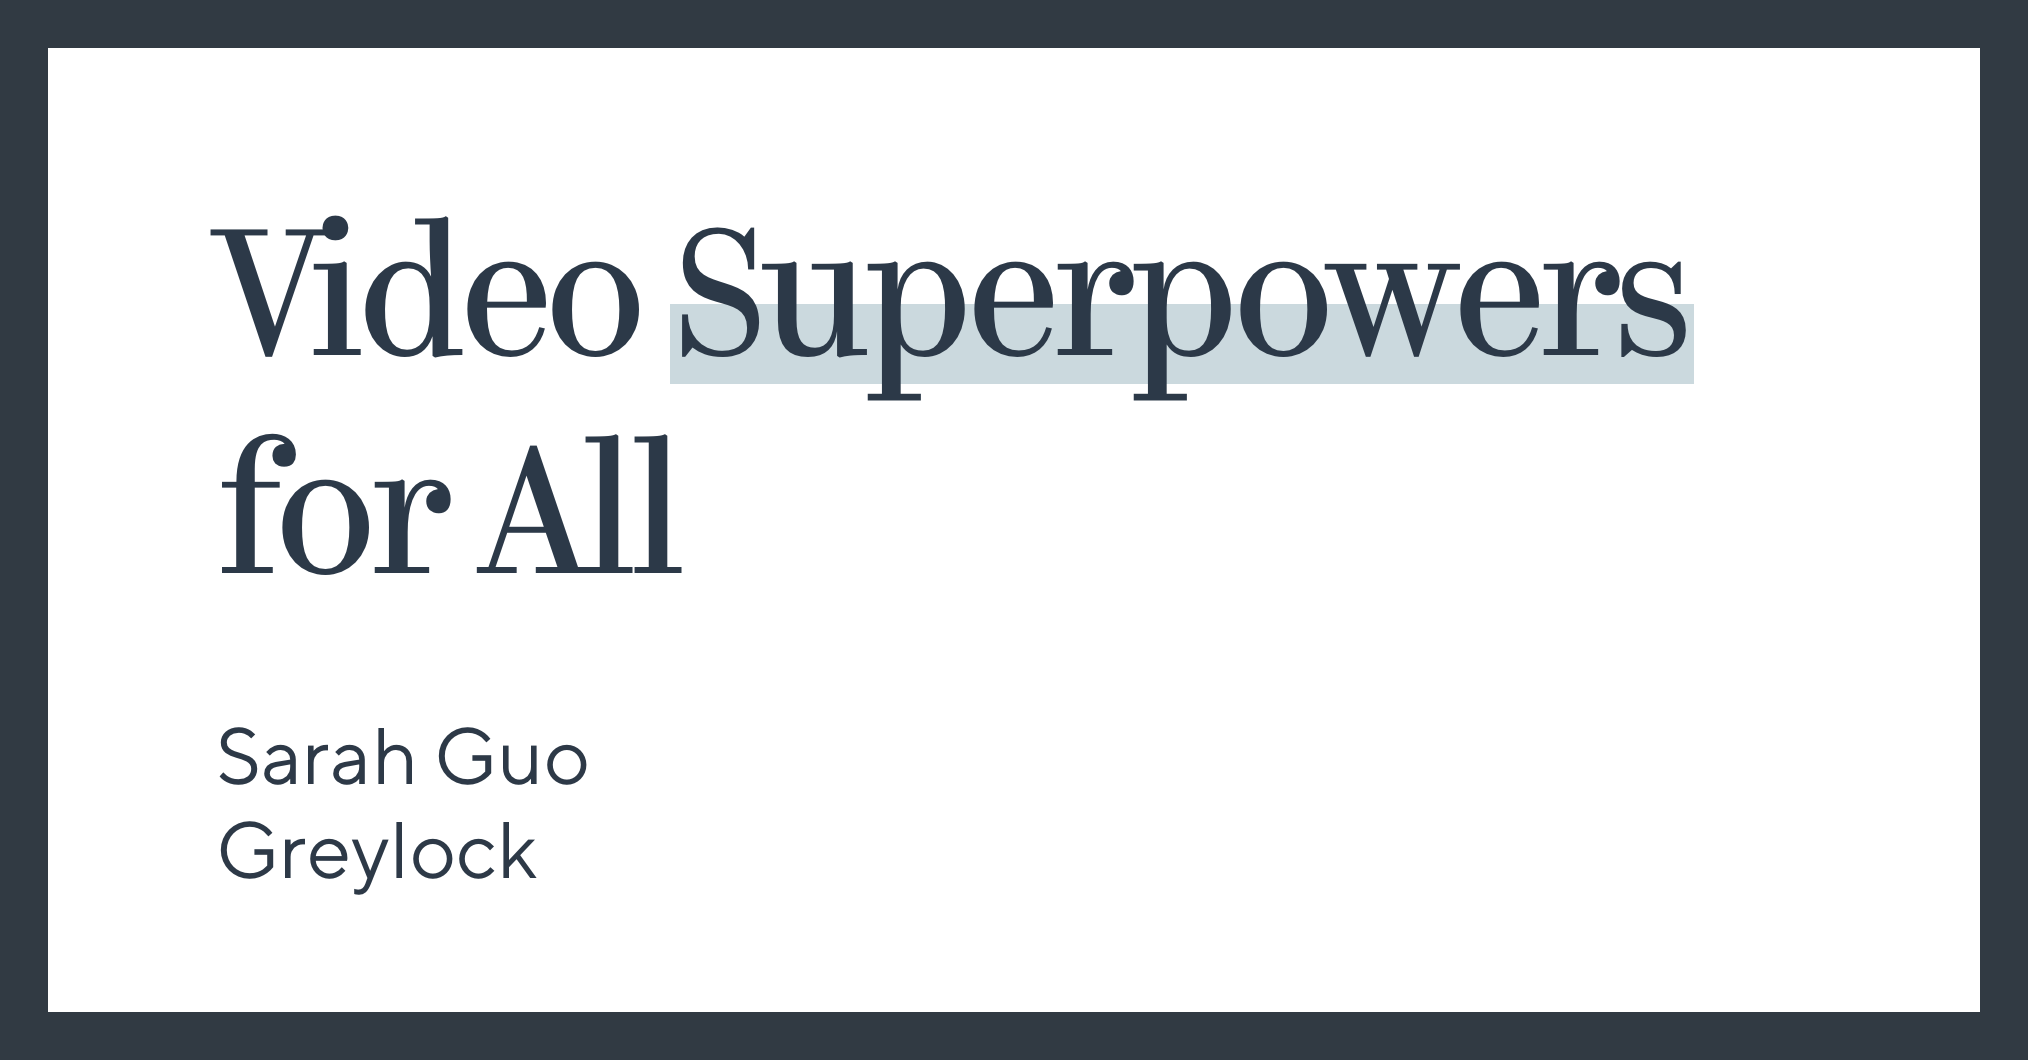 Video Superpowers for All